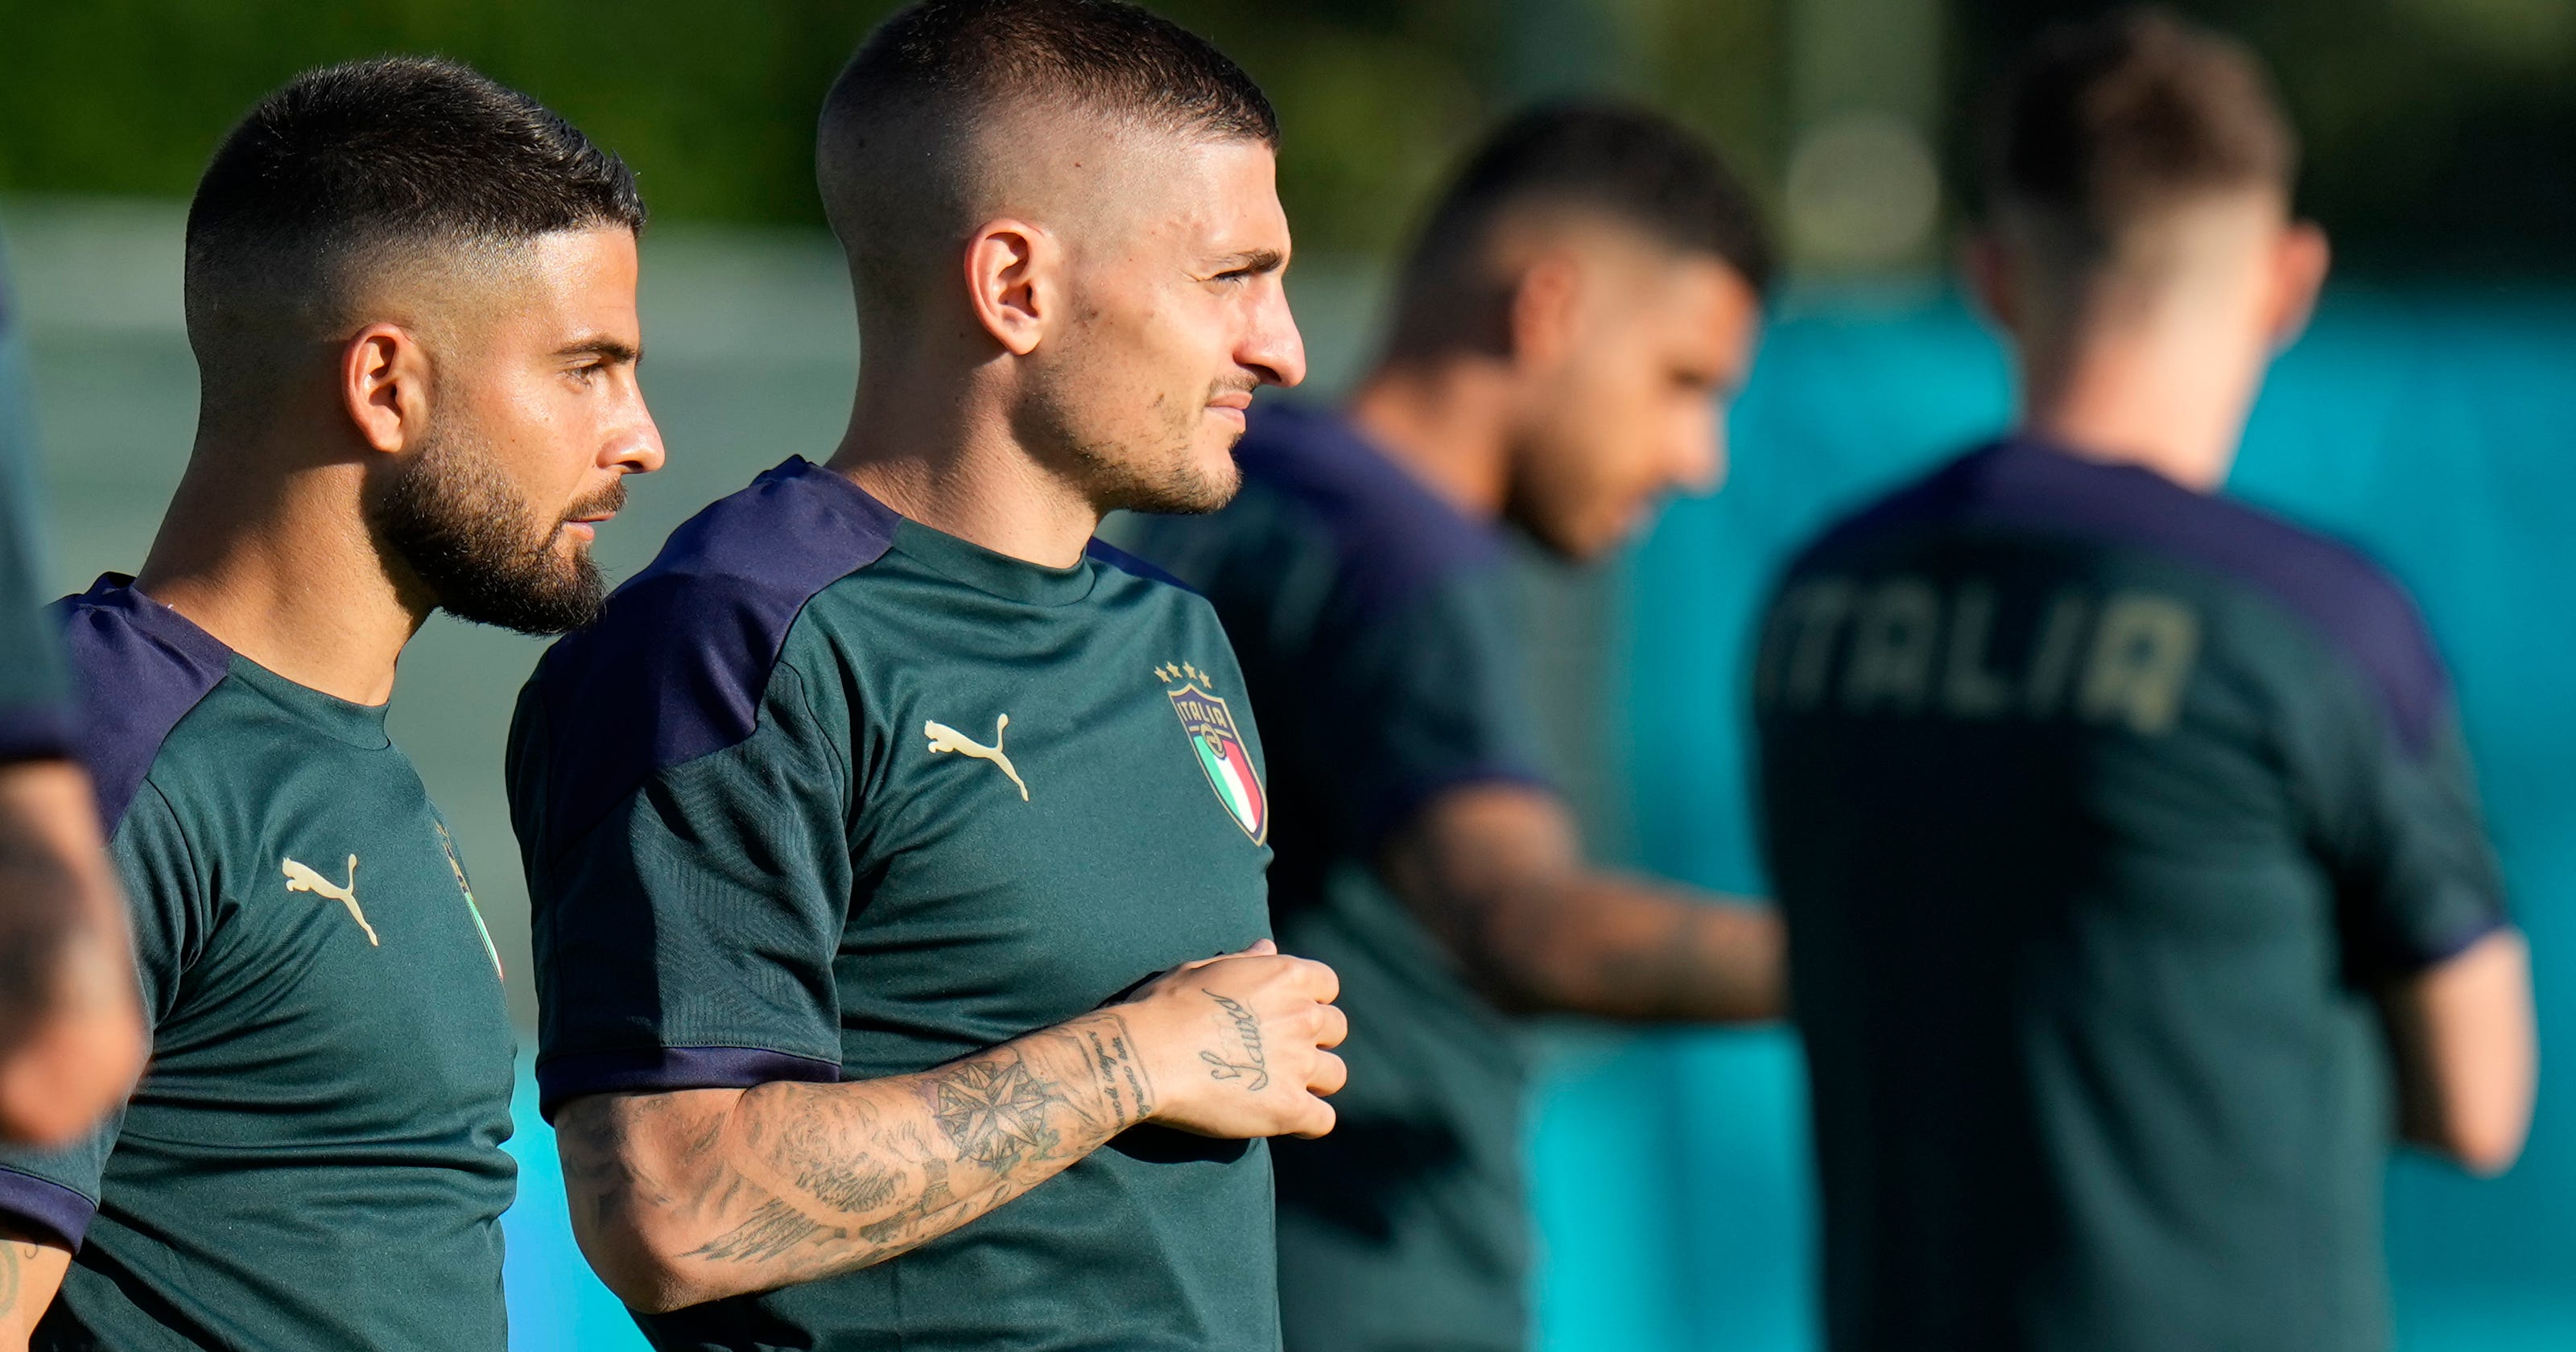 Italy's reserves anxious to face Wales at Euro 2020